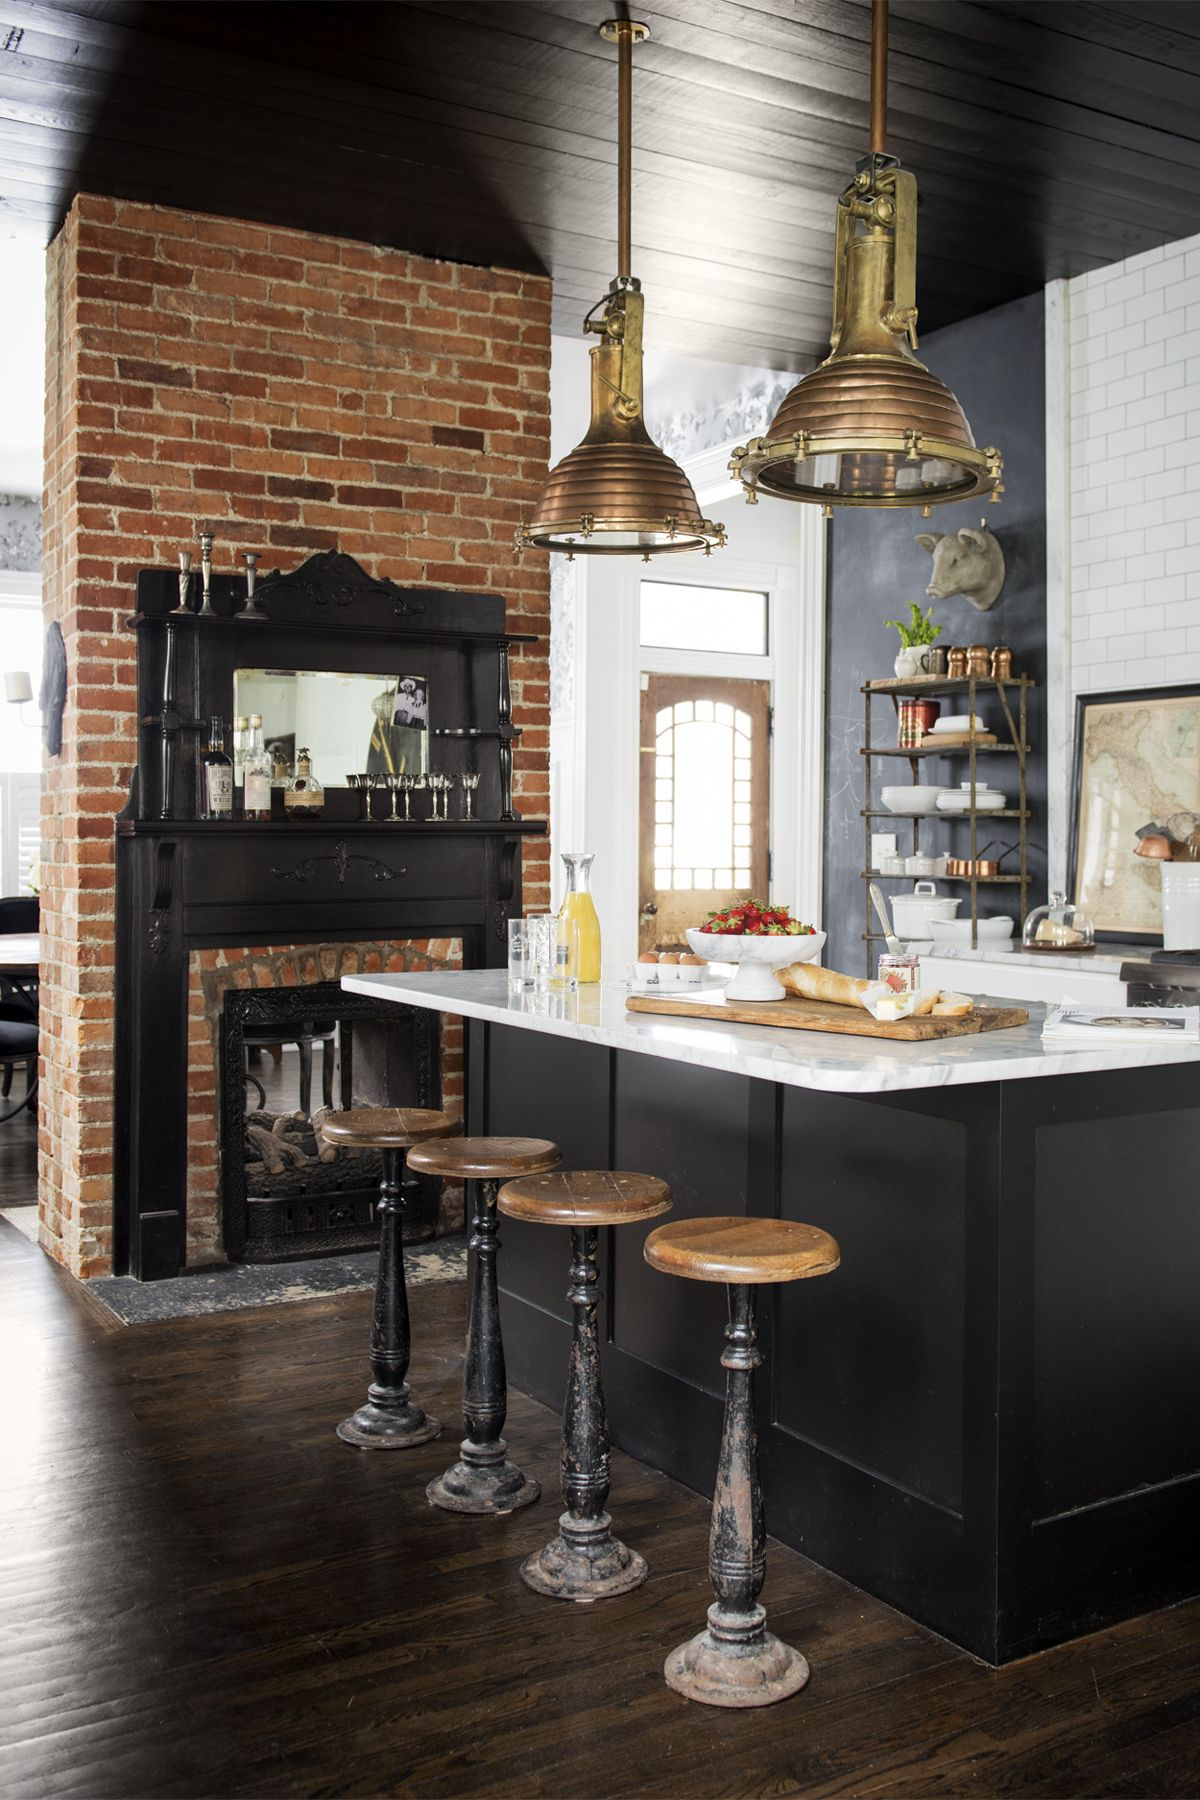 black kitchens are the new white kitchens black kitchen cabinets rh countryliving com country kitchen blackstone va country kitchen blackberry pie